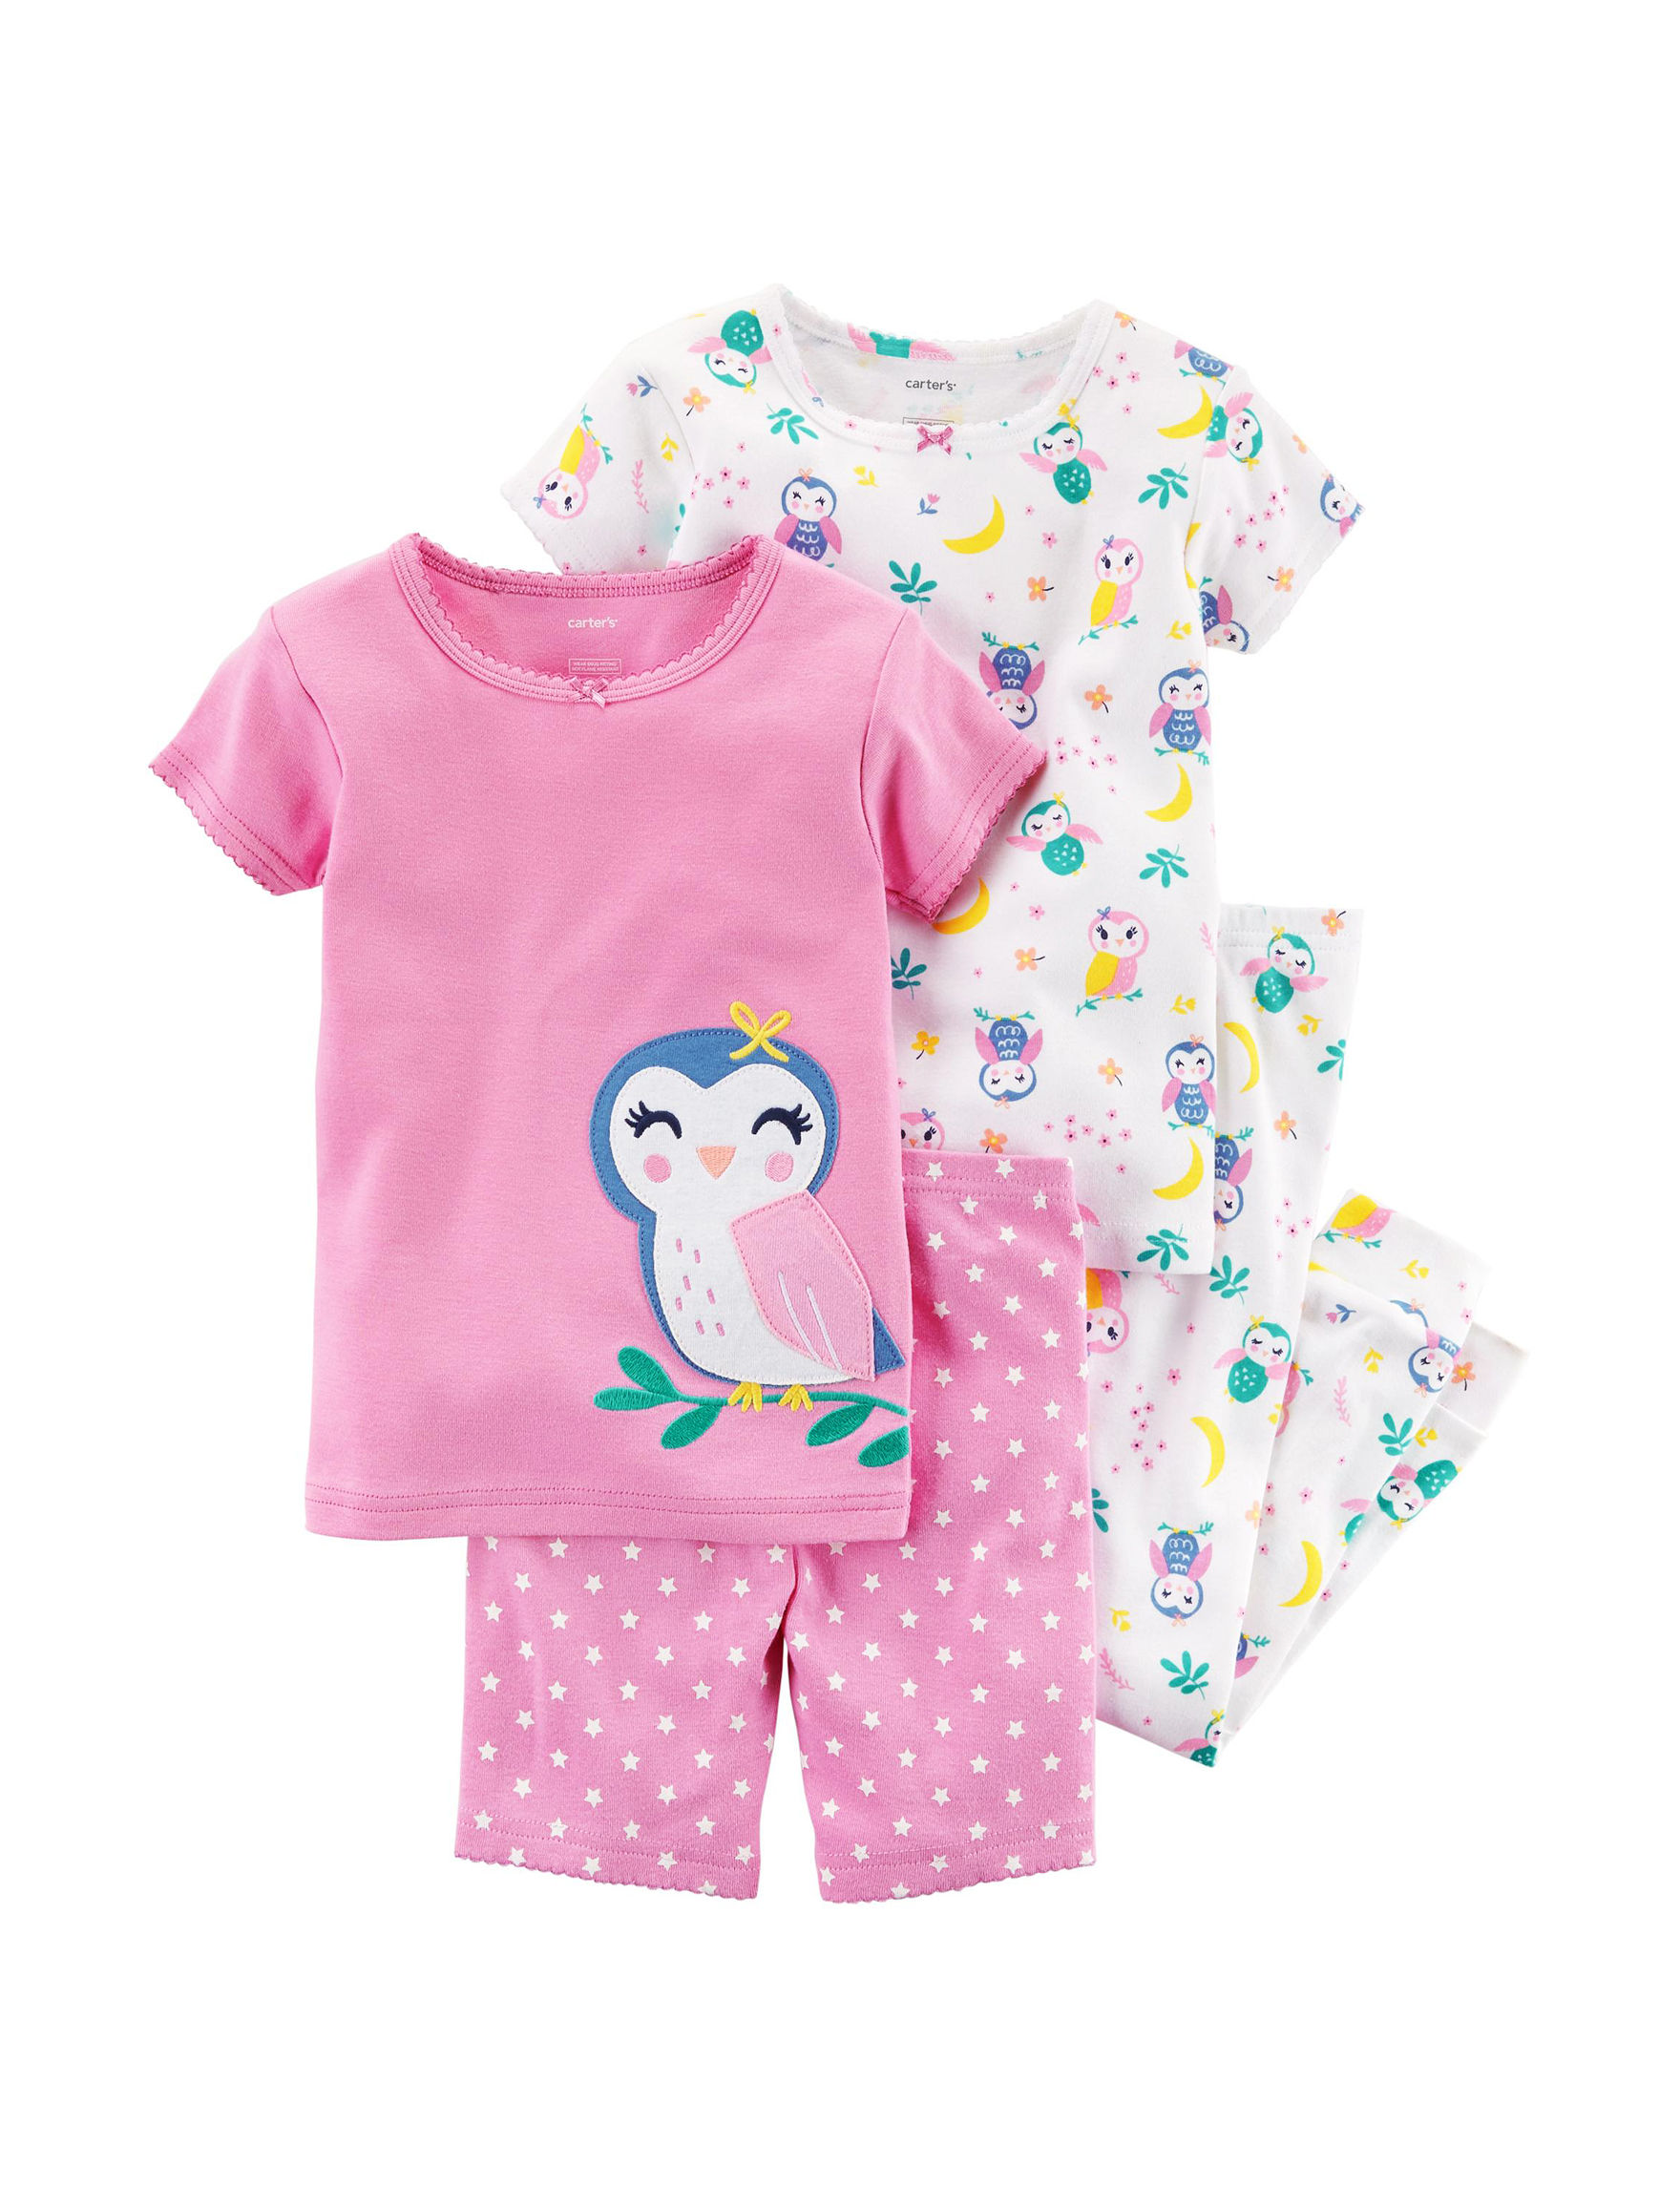 Carter's Pink / White Pajama Sets